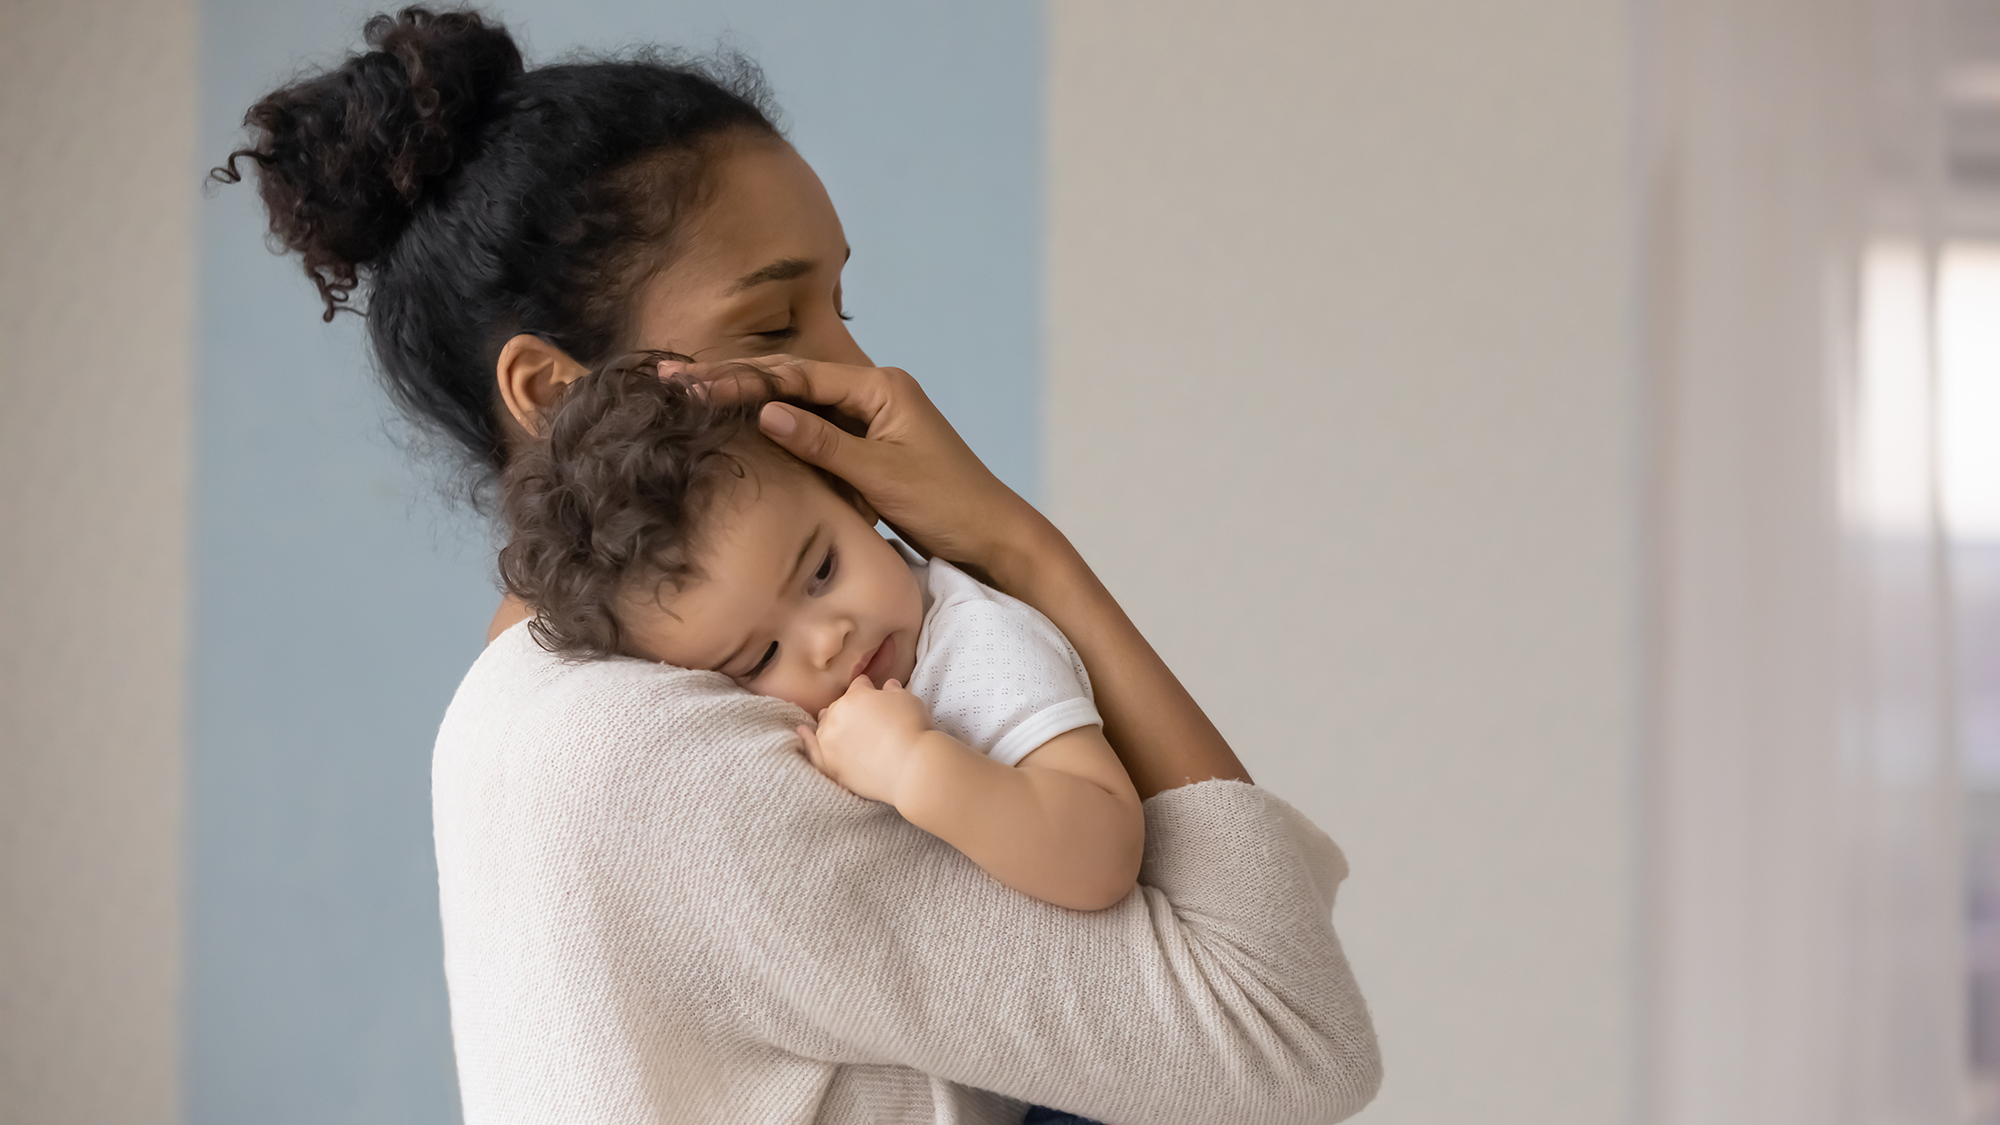 Top 10 things Mum's ask Pharmacists about